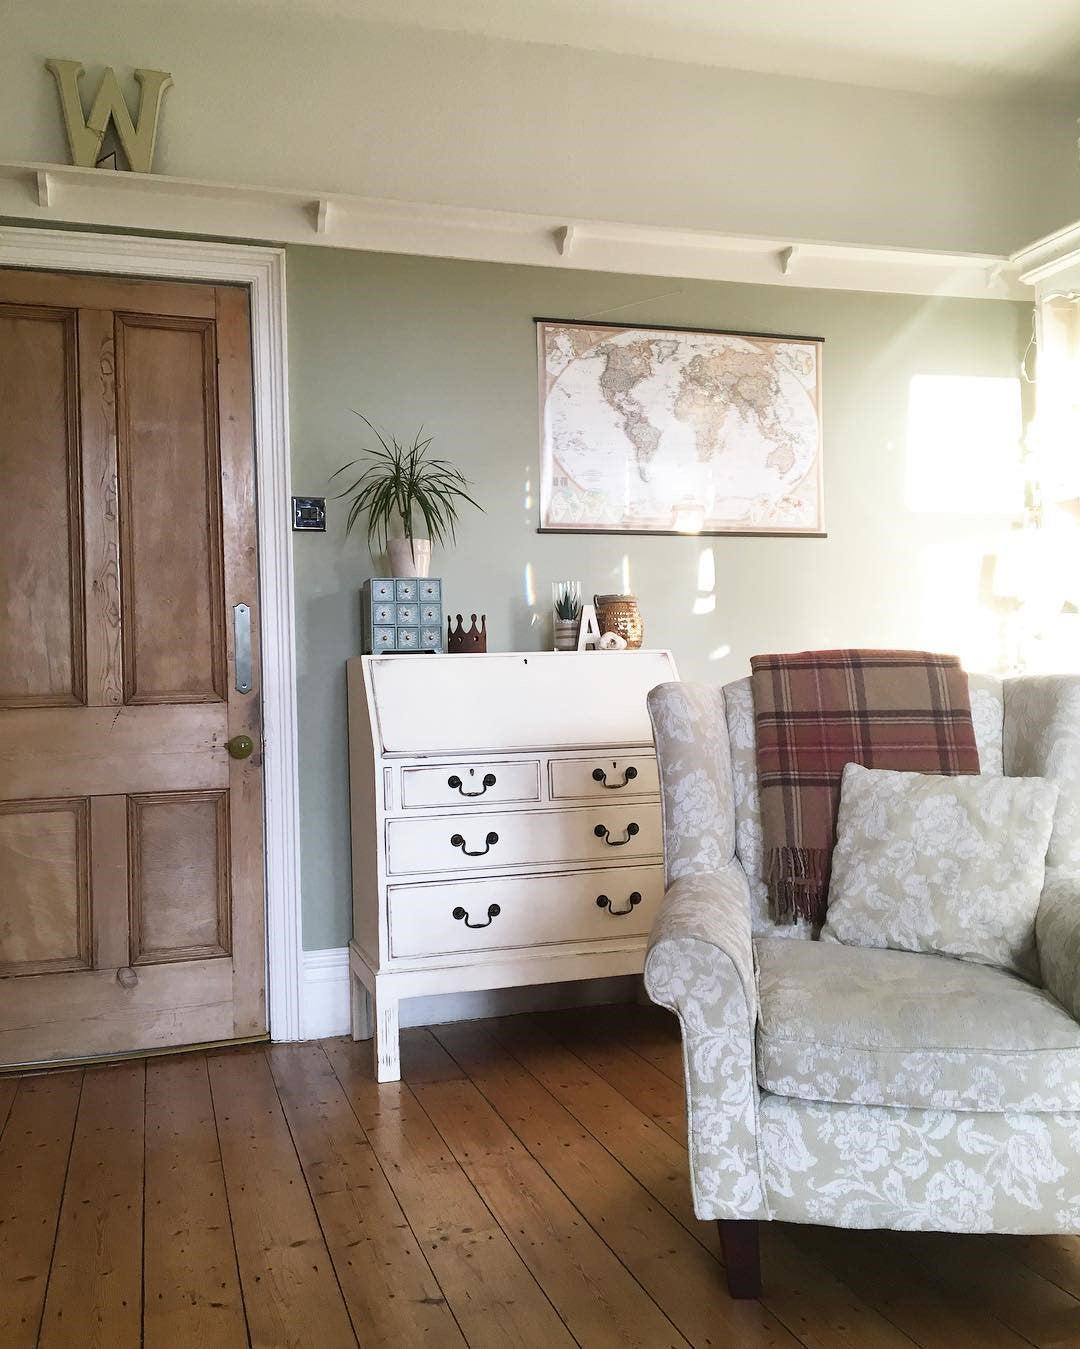 What to pinpoint your interior design style? Here's how to do it. Photo credit: @gingerhearts via Instagram